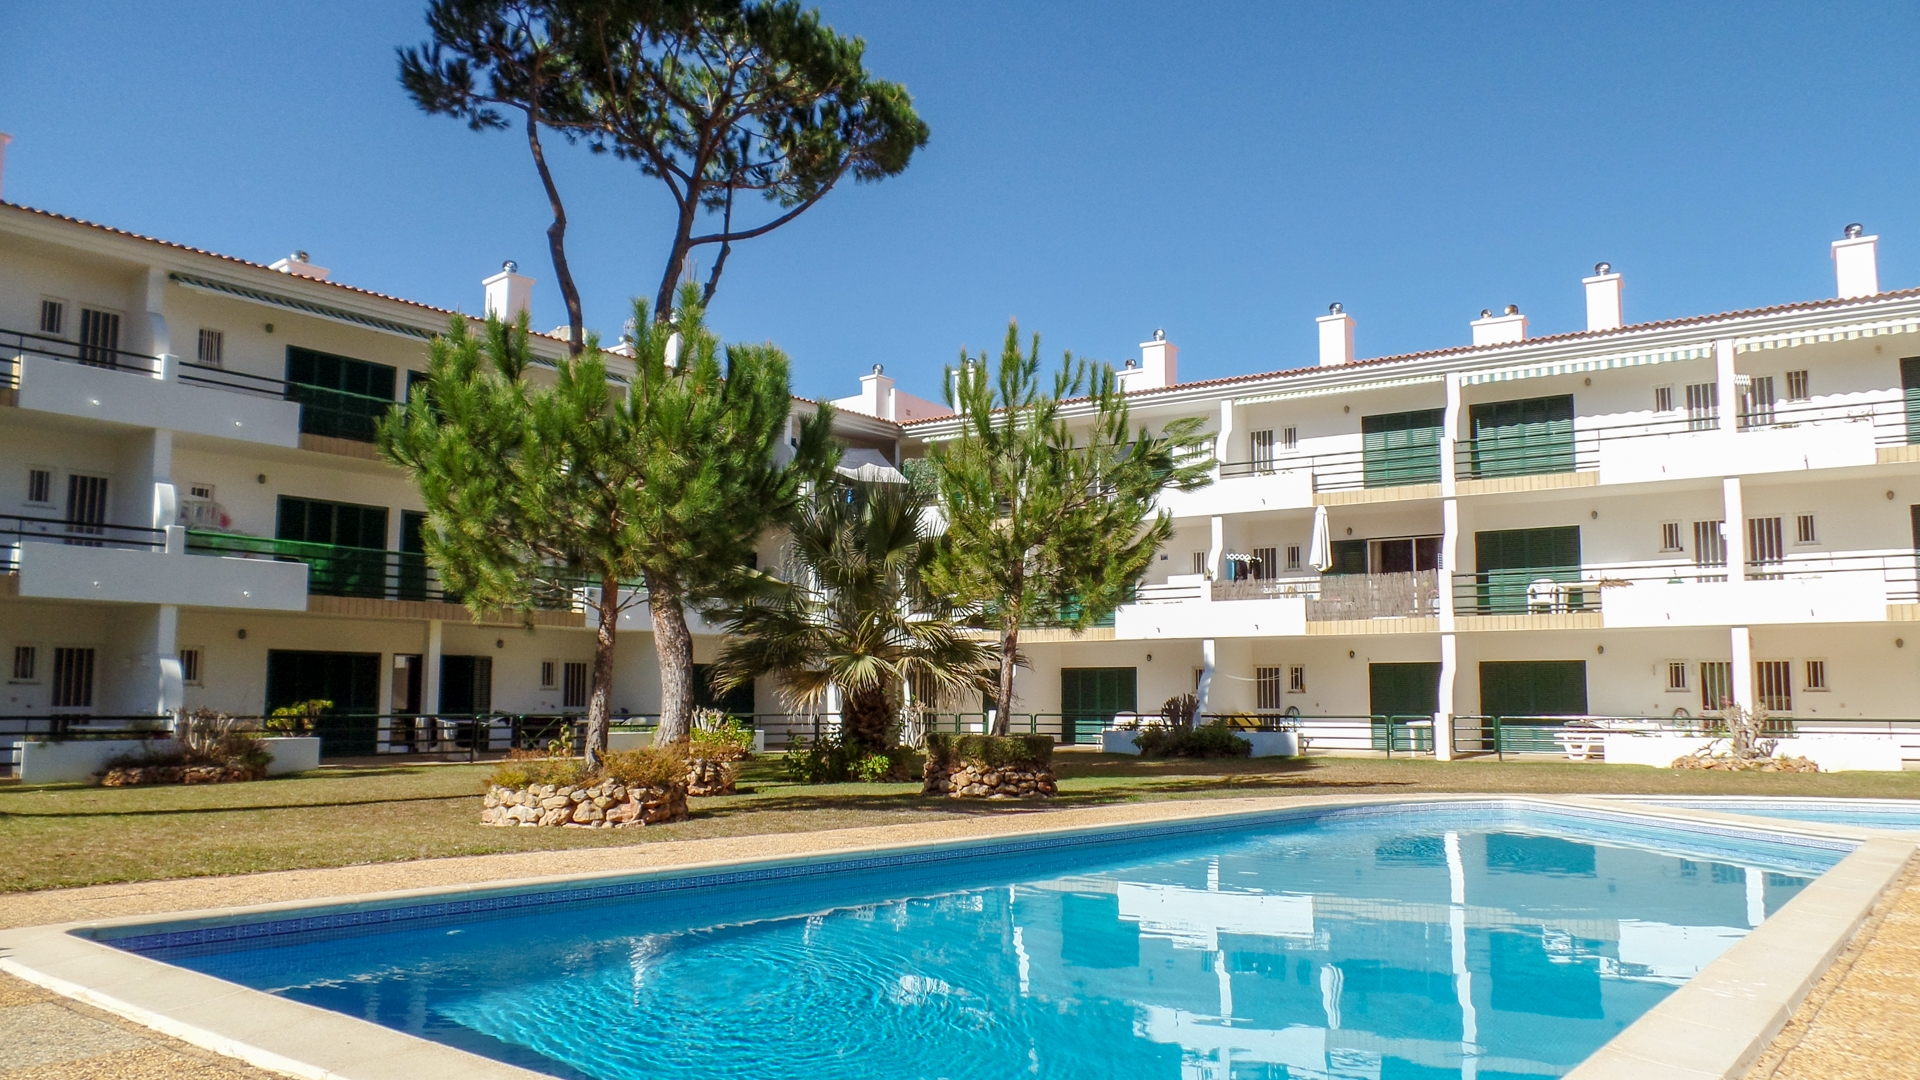 3 bedroom 2 bathroom apartment with pool and garage in Vilamoura | VM1358 Ground floor 3 bedroom 2 bathroom apartment with fireplace, terrace, underground garage and communal swimming pool, located in a quiet urbanization close to all amenities, in Vilamoura.